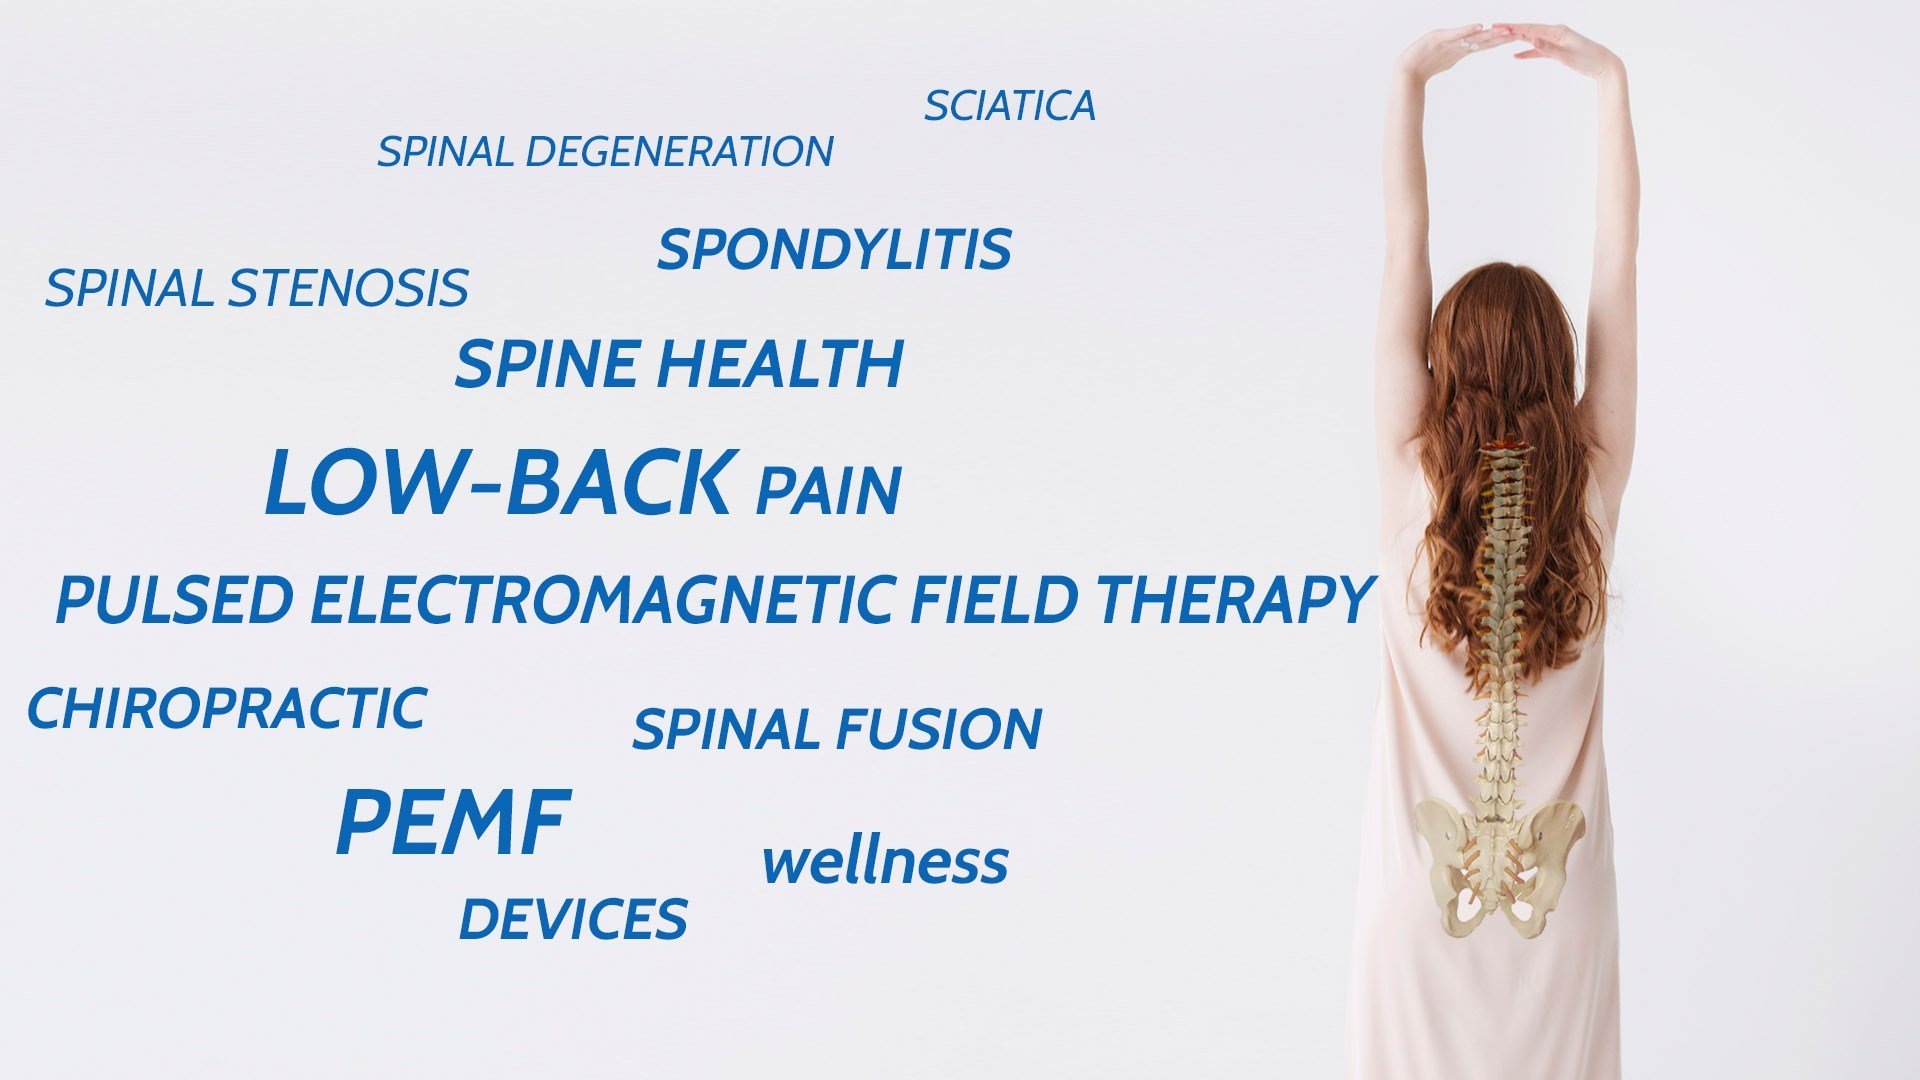 PEMF devices for Spine Health & Low Back Pain Research